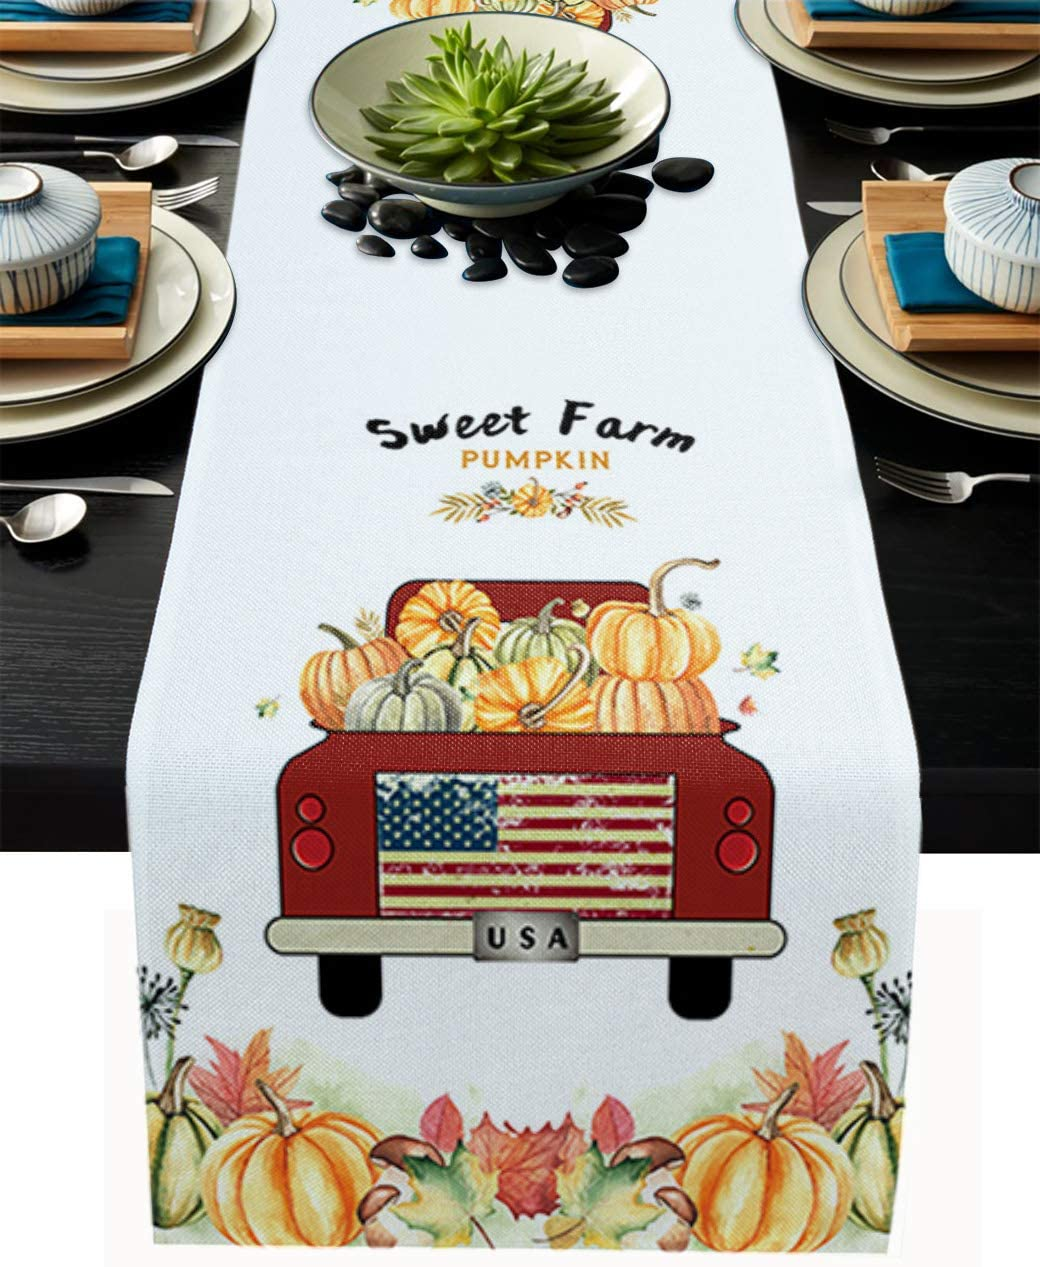 Greeeen Cotton Linen Table Runner 13 x 70 inch Fall Pumpkin Patch Truck Kitchen Table Runners for Family Dinner, Banquet, Parties and Celebrations Autumn Farmhouse Market Table Decor